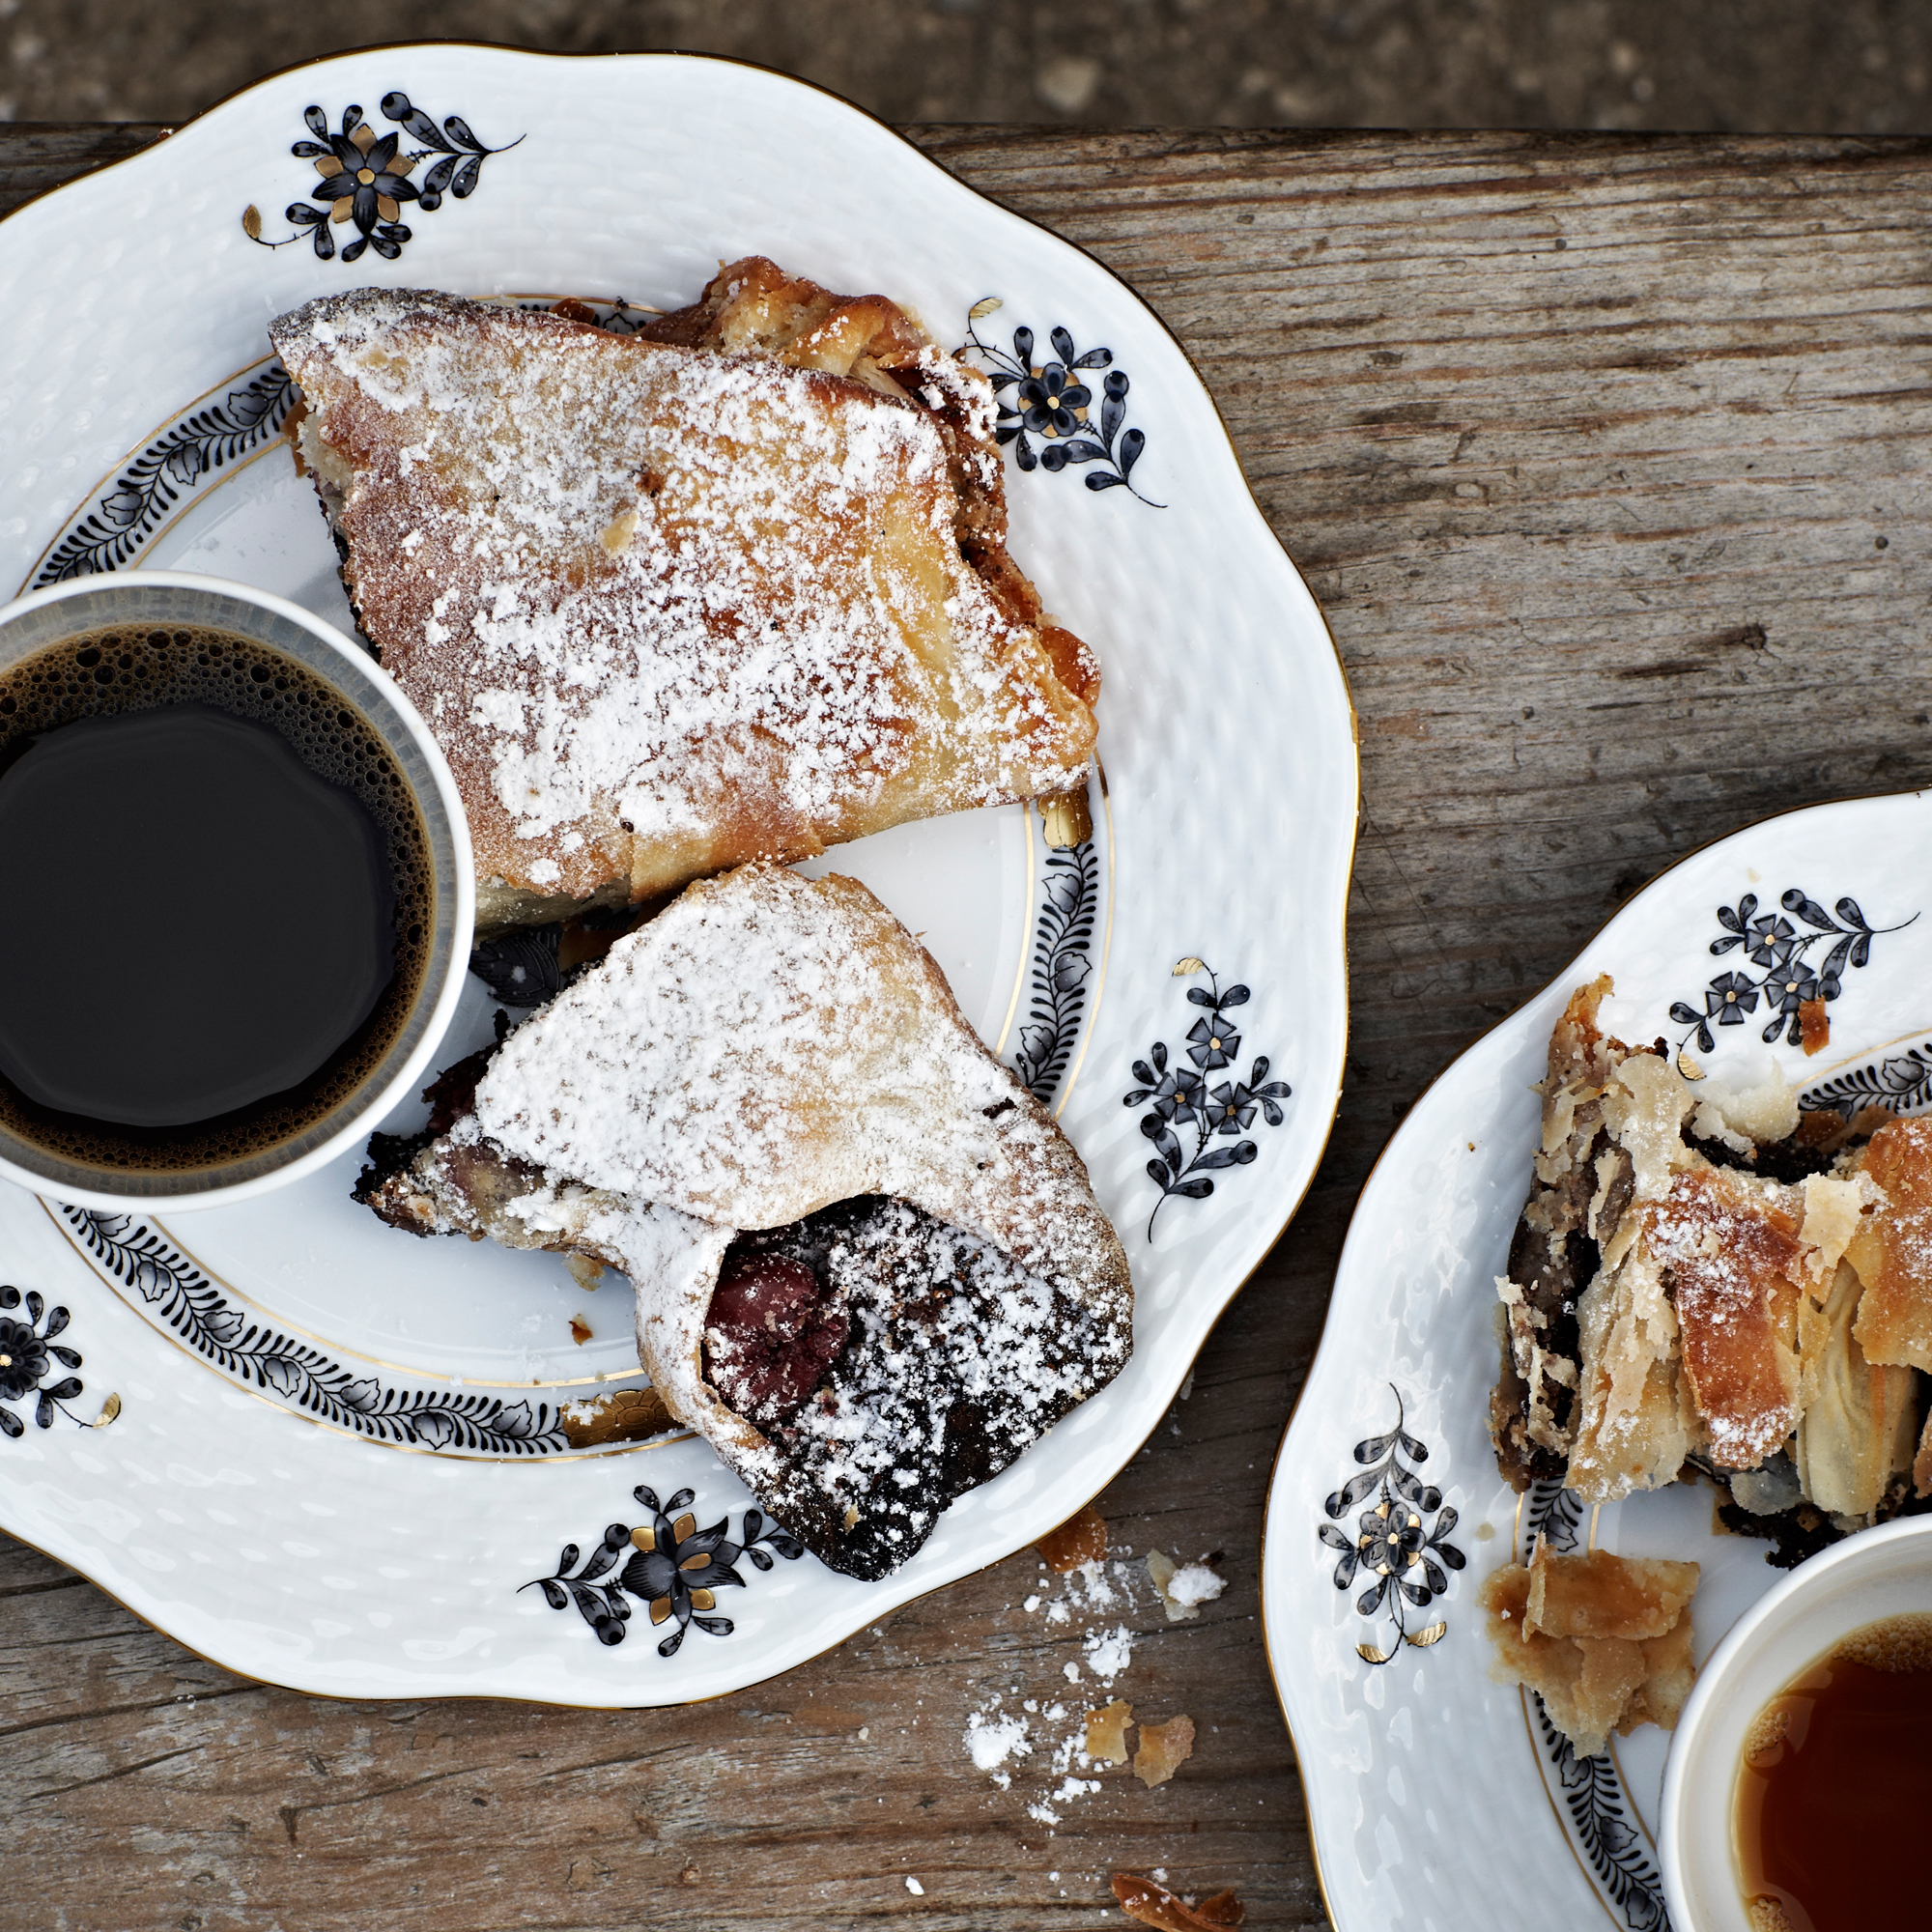 original-201309-r-sour-cherry-and-poppy-seed-strudel.jpg